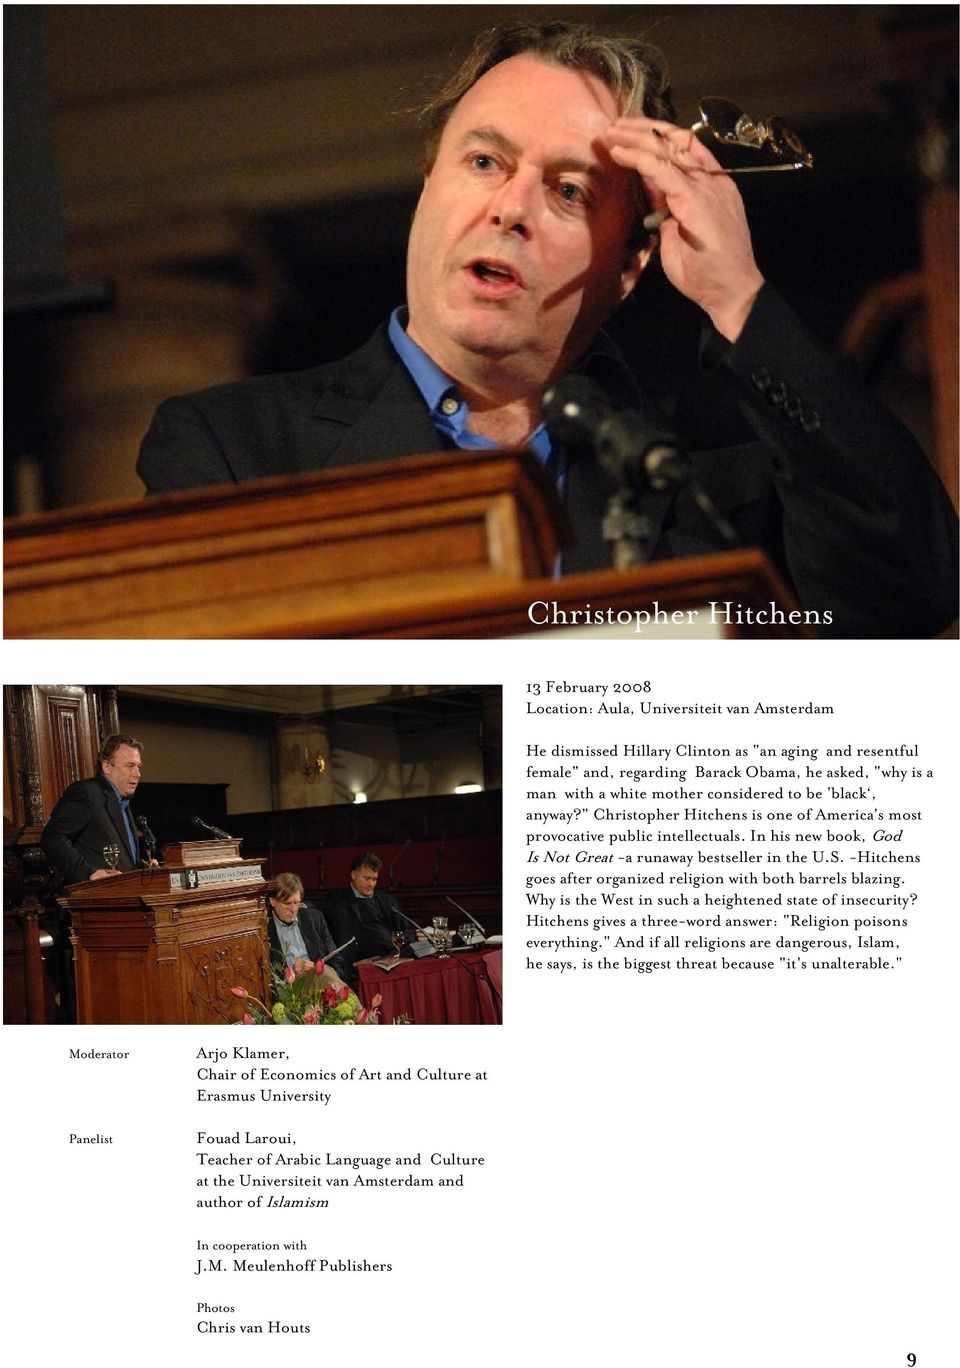 "S. -Hitchens goes after organized religion with both barrels blazing. Why is the West in such a heightened state of insecurity? Hitchens gives a three-word answer: ""Religion poisons everything."